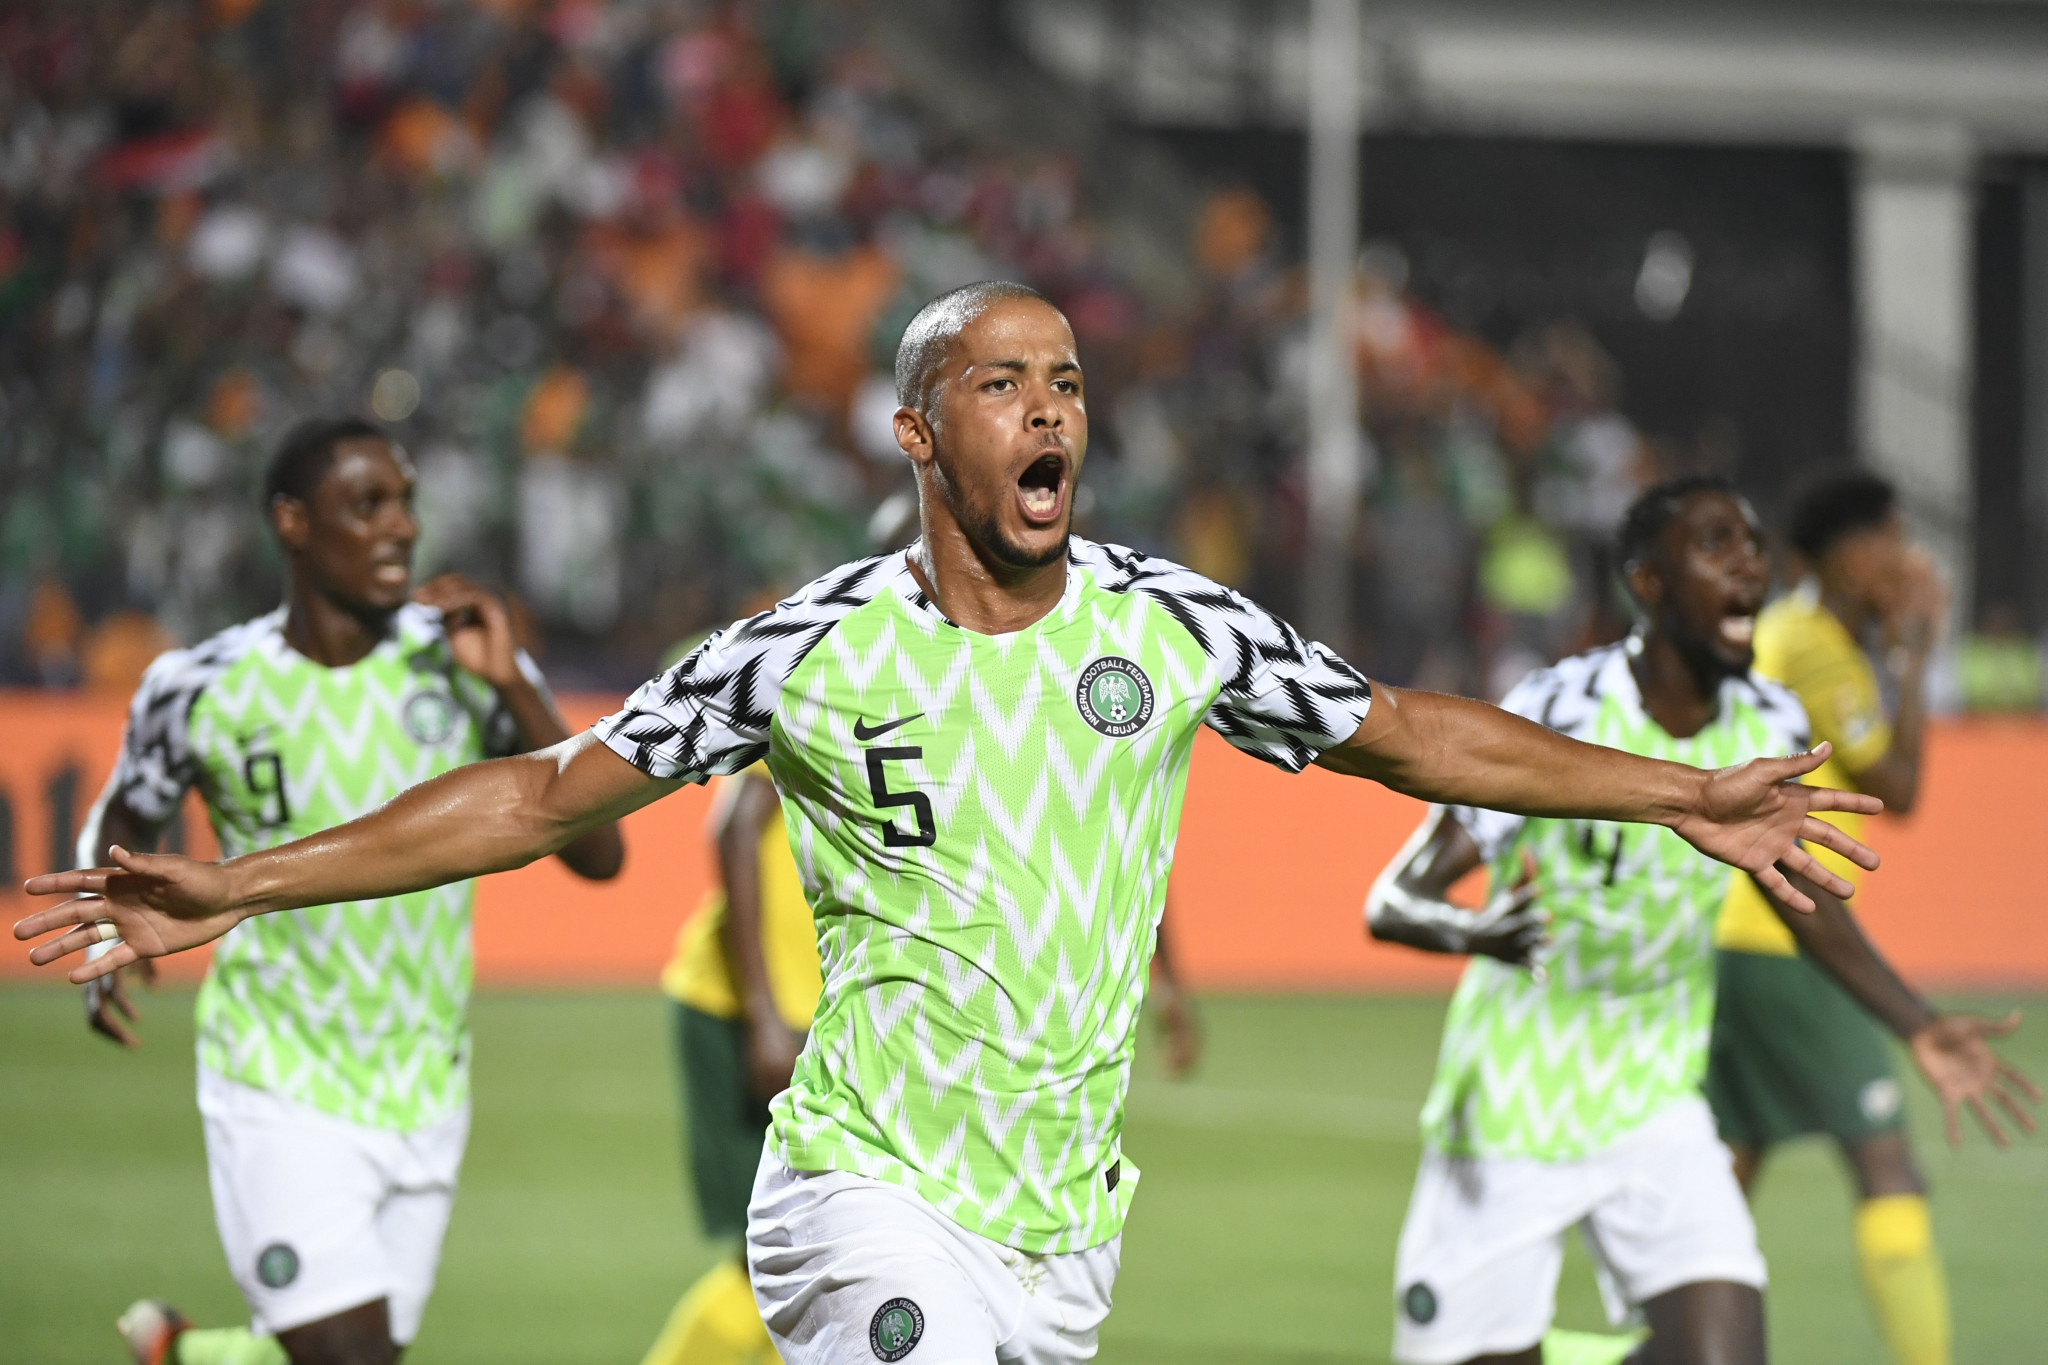 Senegal and Nigeria scrape through to reach semi-finals of African Cup of Nations